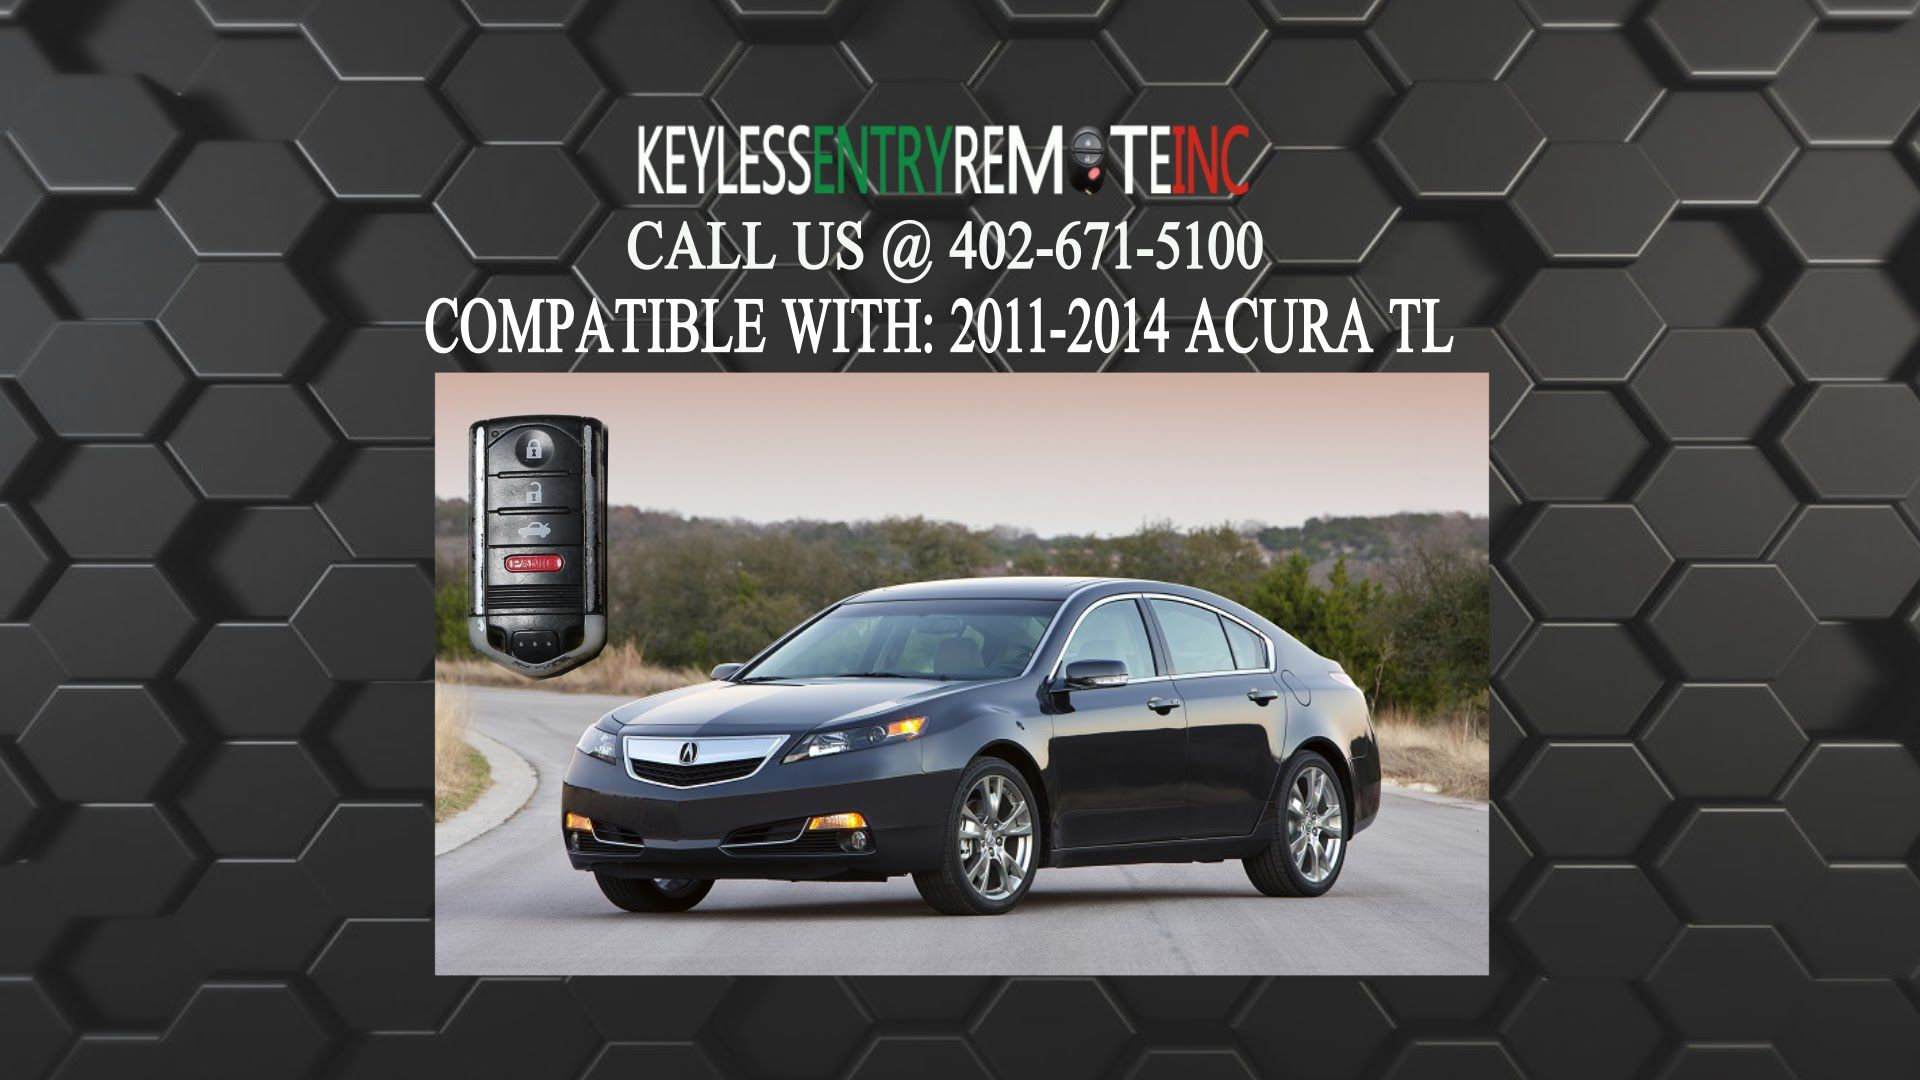 How To Replace An Acura Tl Key Fob Battery 2009 2013 How To